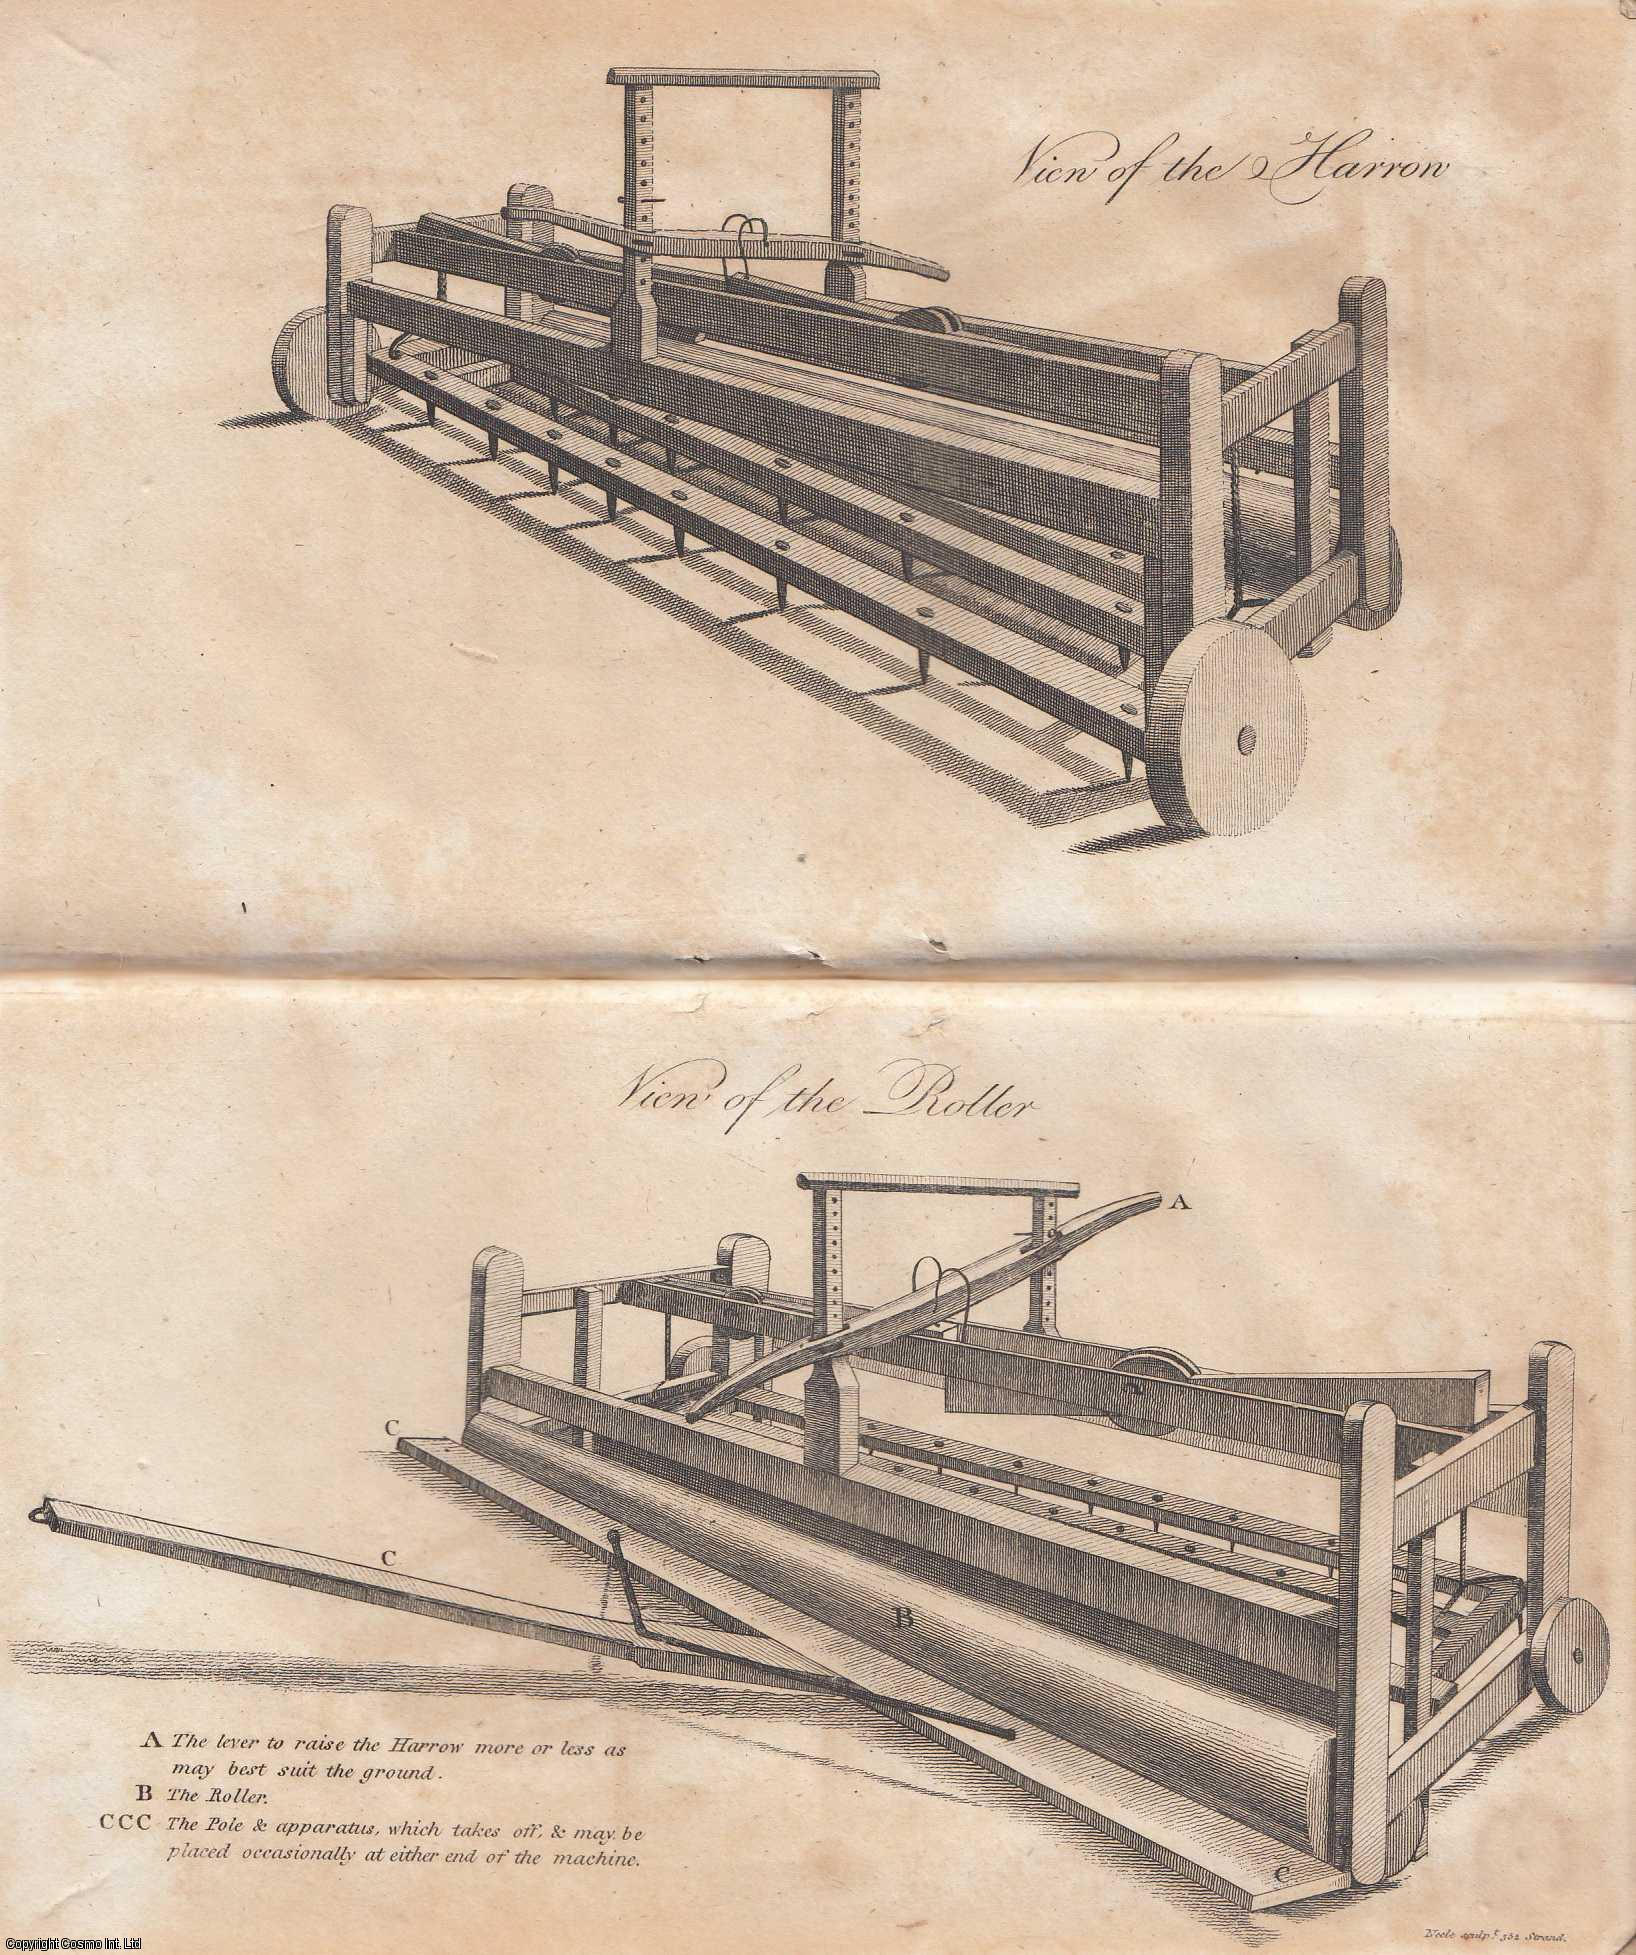 DILLON, JOHN TALBOT - Newly Invented Harrow and Roller. With a plate. An original article from the Annals of Agriculture 1799.